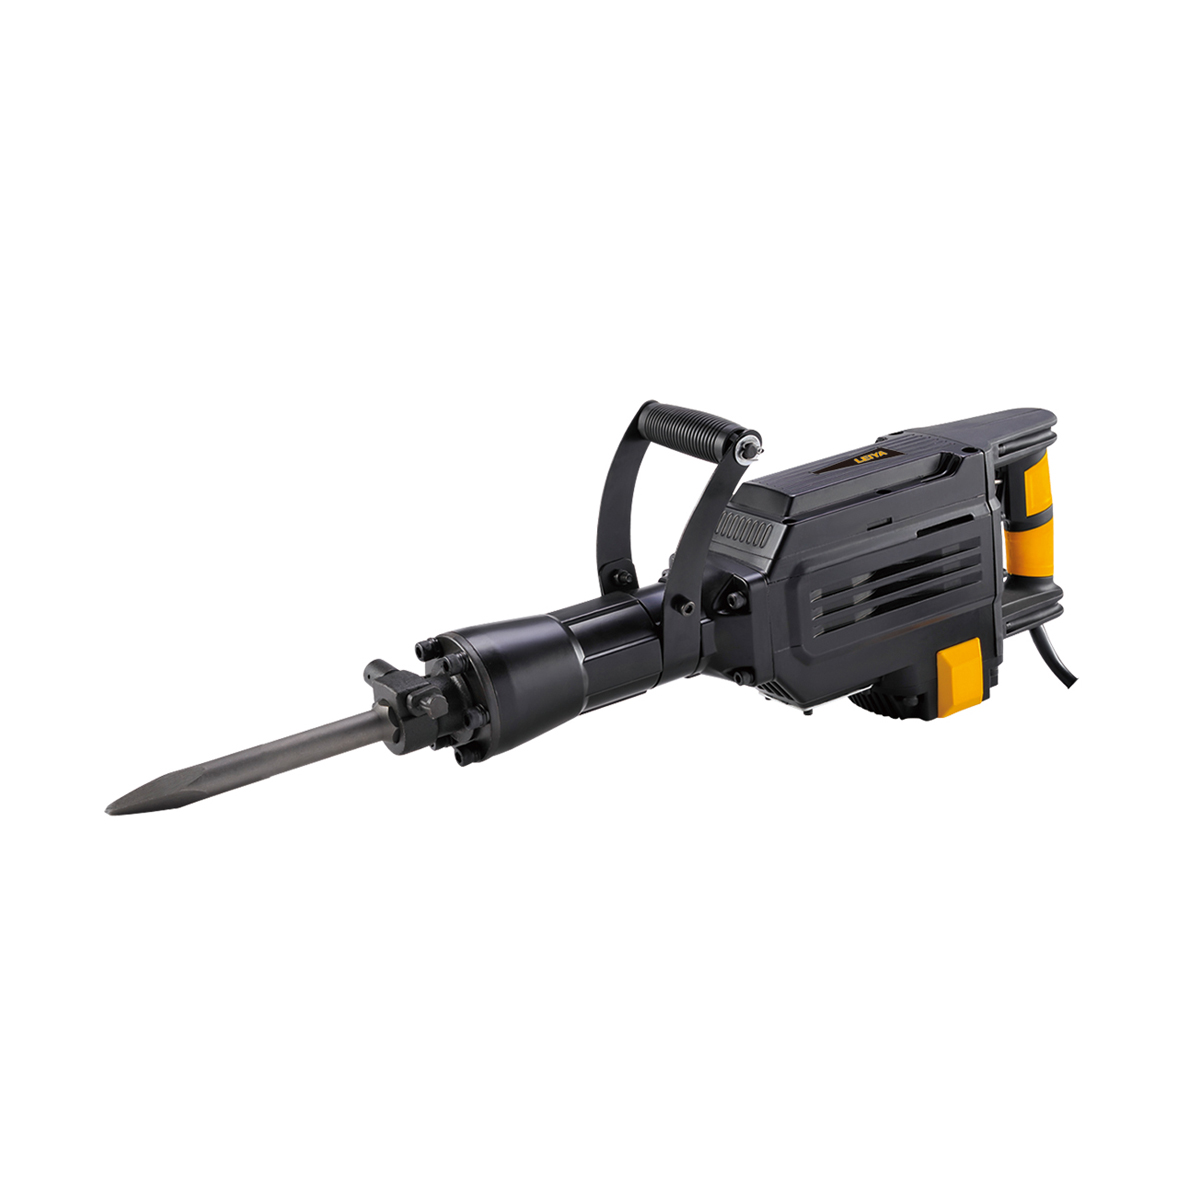 Hex.30 Chuck 1600w 45j High Quality Demolition Hammer Ly95-01 ,breaker Hammer /jack Hammer LY95-01